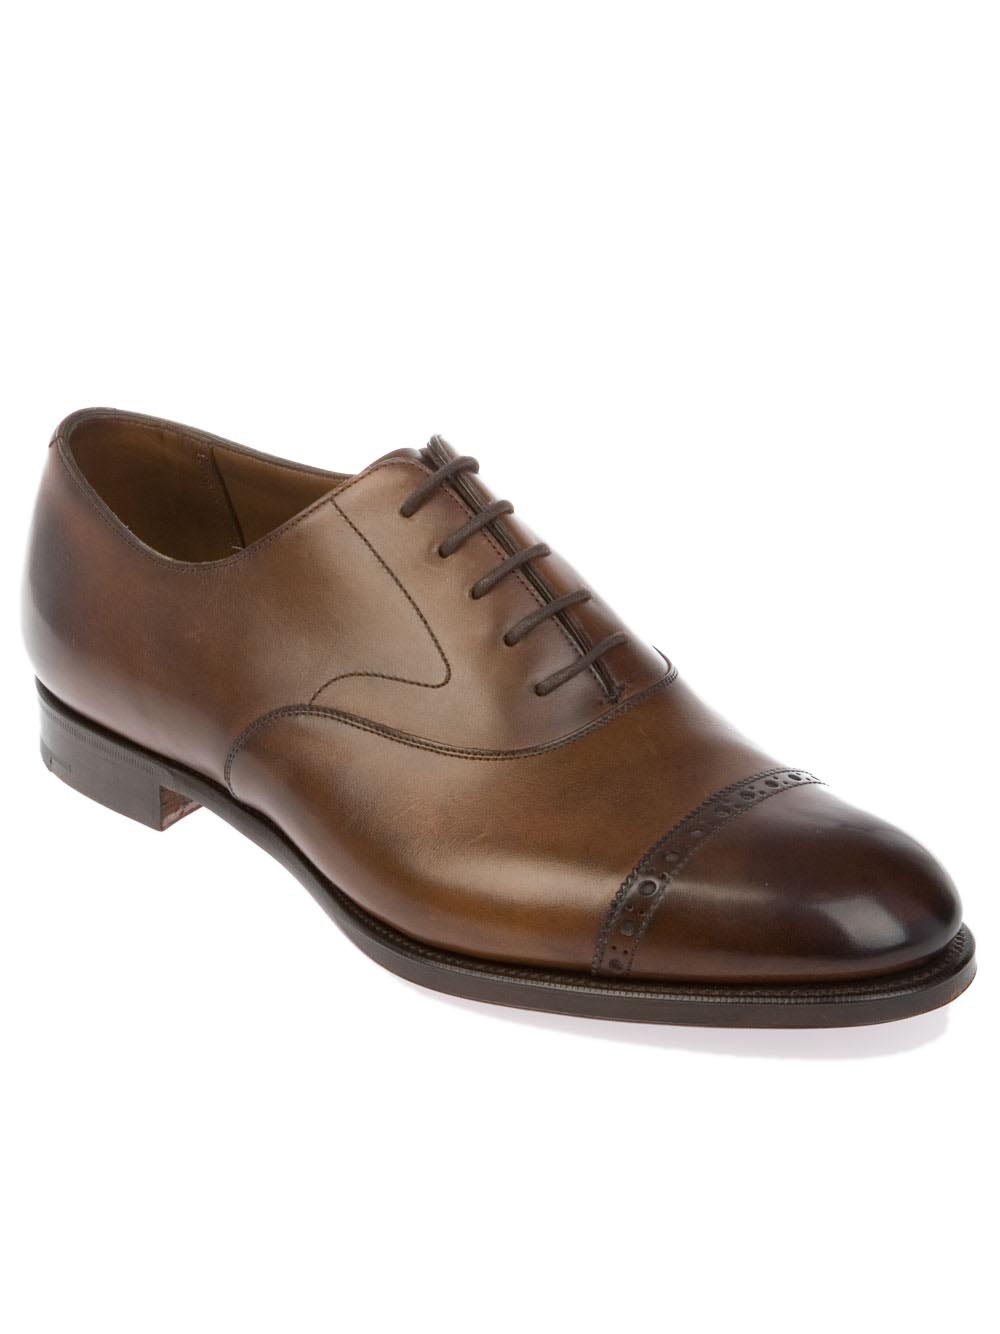 Edward Green Berkeley Shoe Dark Oak Antique | BERKELEY | Botta & B Online Store